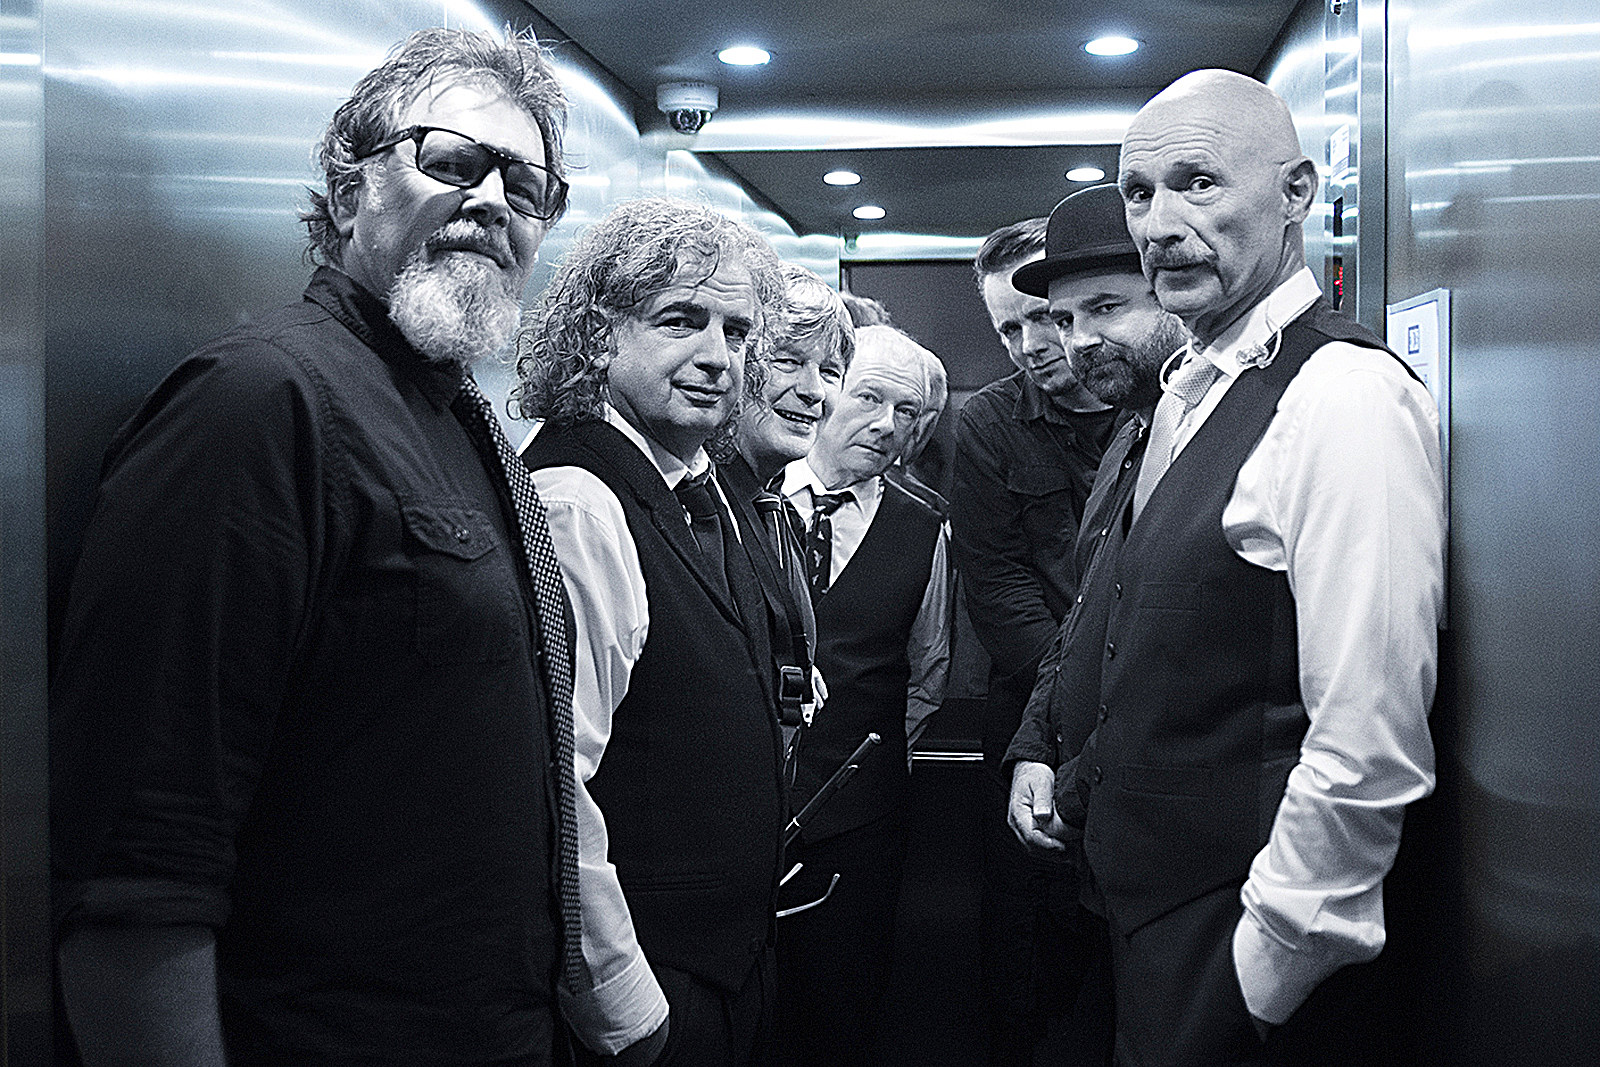 King Crimson Could Spend More Time in the U.S. Because of Brexit